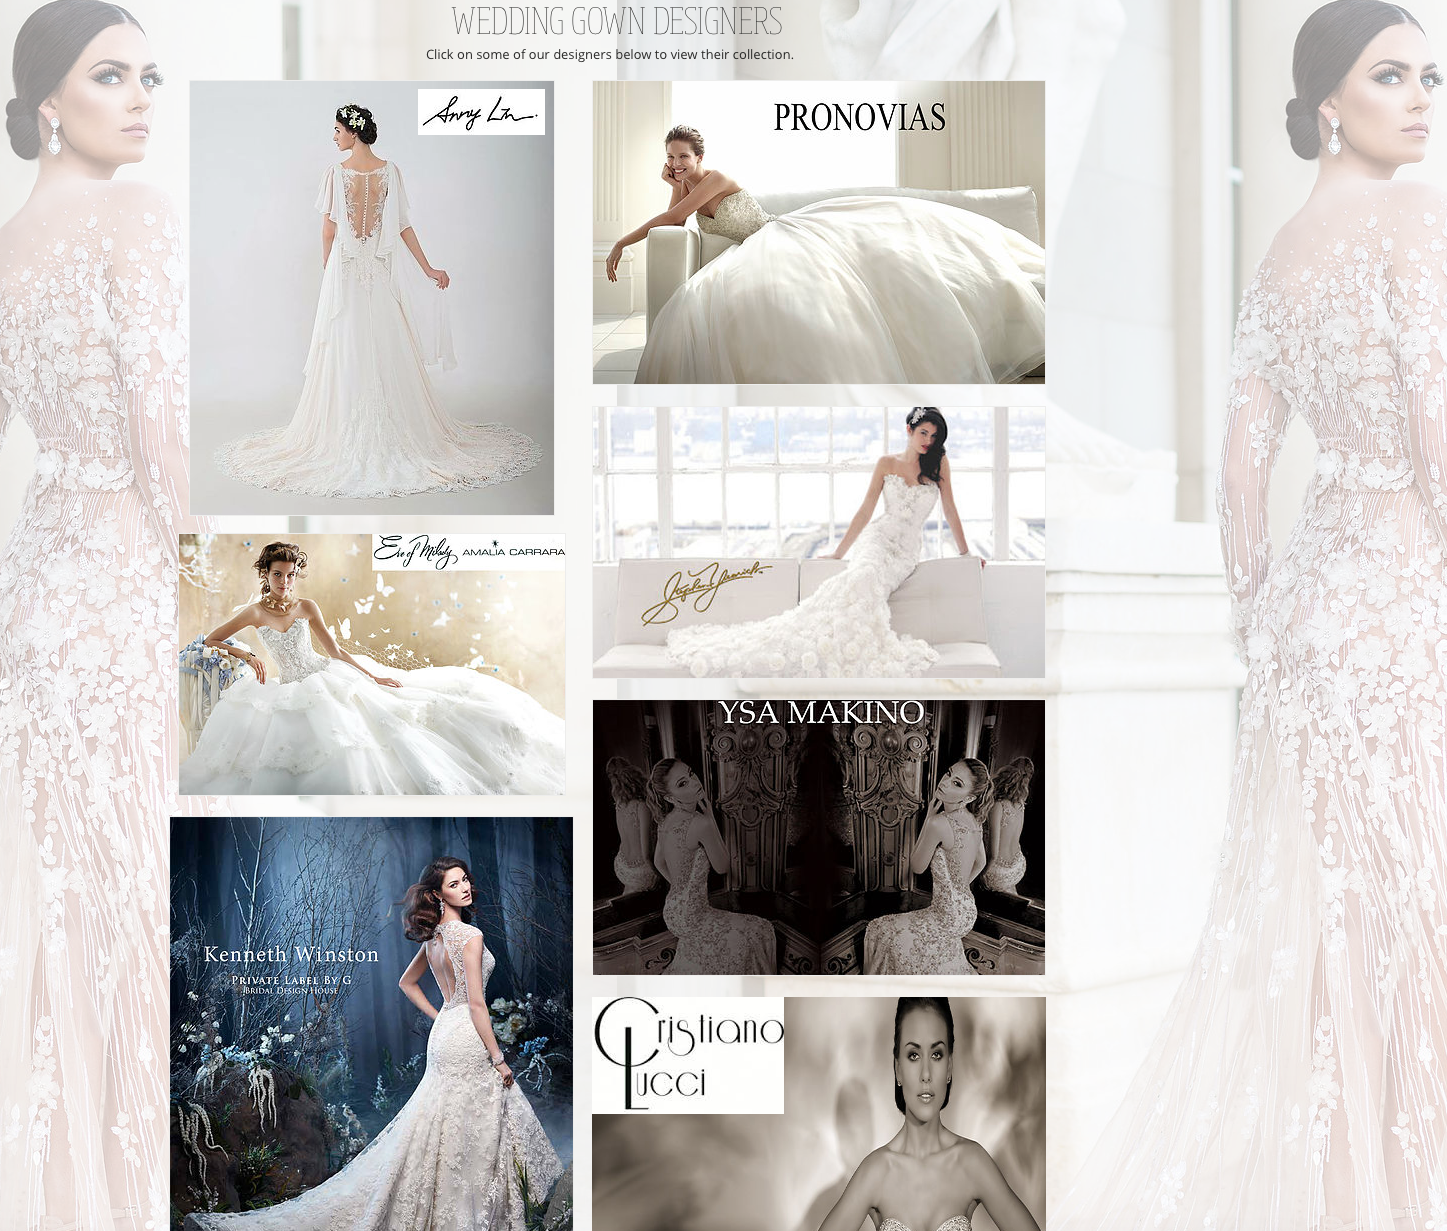 """MEA MARIE BRIDAL  ATELIER   SEATTLE'S PREMIER COUTURE BRIDAL EXPERIENCE      www.meamarie.com     MeaMarie Bridal Atelier is a Seattle based bridal couture studio featuring the world's leading fashion designers. We work with you by appointment on a one-to-one basis to ensure that you will enjoy the experience you deserve.   MEA MENDEZ  - My name is Mea Mendez and my love for the bridal industry began in 1998 when I had the opportunity to work with two sisters; both gifted designers who created all of their own dresses. MeaMarie Bridal Atelier is another dream come true because now we are able to offer Haute Couture designs from around the world.  All of us at MeaMarie are delighted to become part of this special time in your life and it's our goal to help make your dreams come true on your big day!   RACHEL WITT  - I am Rachelle Witt, the store Director for MeaMarie Bridal Atelier. As a young girl I watched my mother, a gifted seamstress, meticulously hand stitch amazing wedding dresses. When I turned fourteen I was the youngest assistant """"hired"""" by a local bridal salon. At sixteen, I became a prom consultant, and by seventeen I was modeling and involved in fashion and trade shows. Needless to say, I love this business!"""